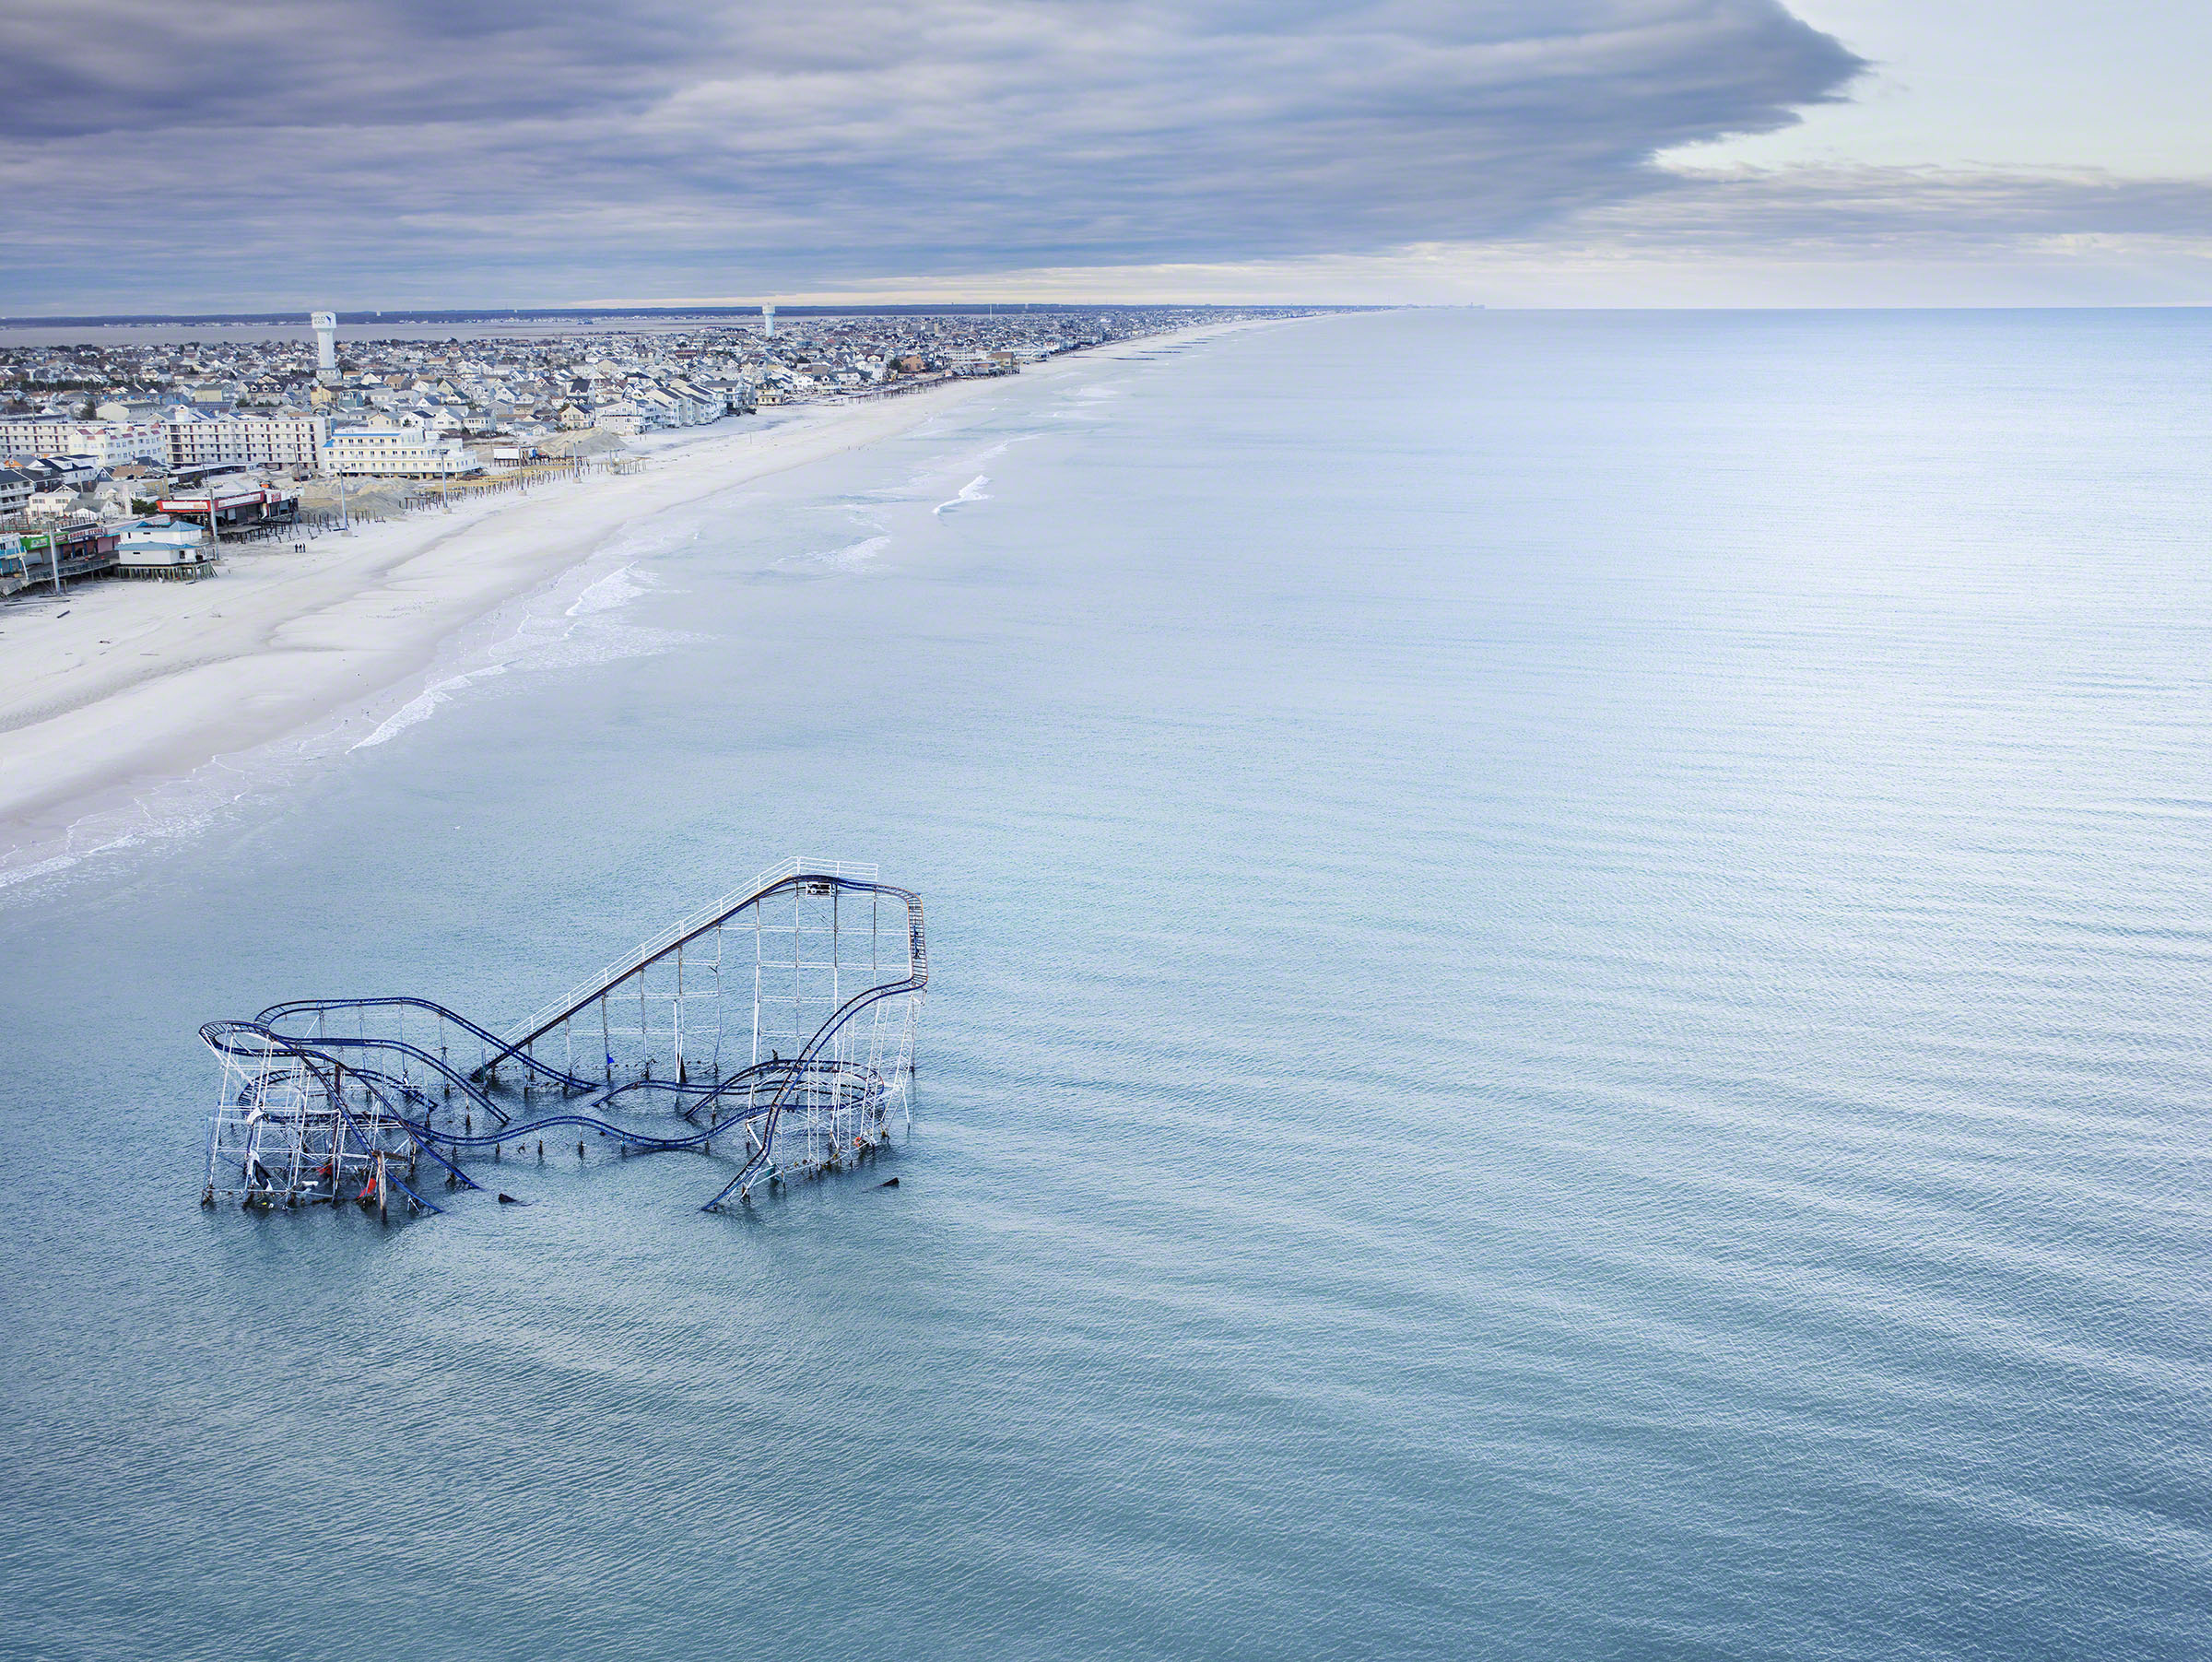 The roller coaster from the boardwalk in Seaside Heights, New Jersey, USA, partially submerged in the ocean after Hurricane Sandy. Photo: Stephen Wilkes courtesy of Peter Fetterman Gallery